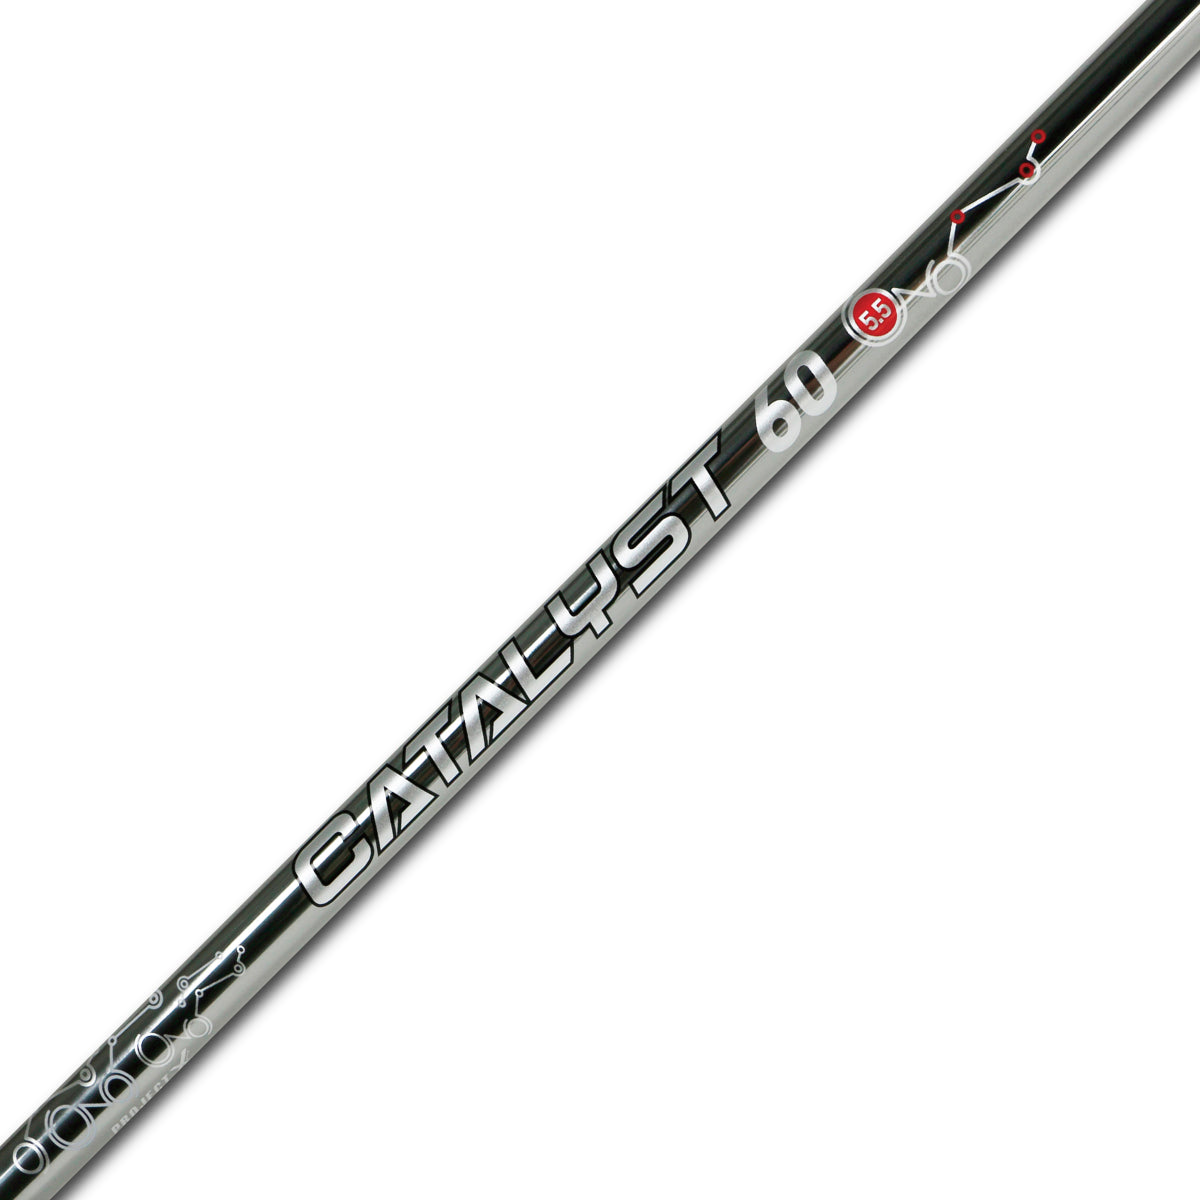 Project X Graphite - Iron - Catalyst PVD Silver - Parallel